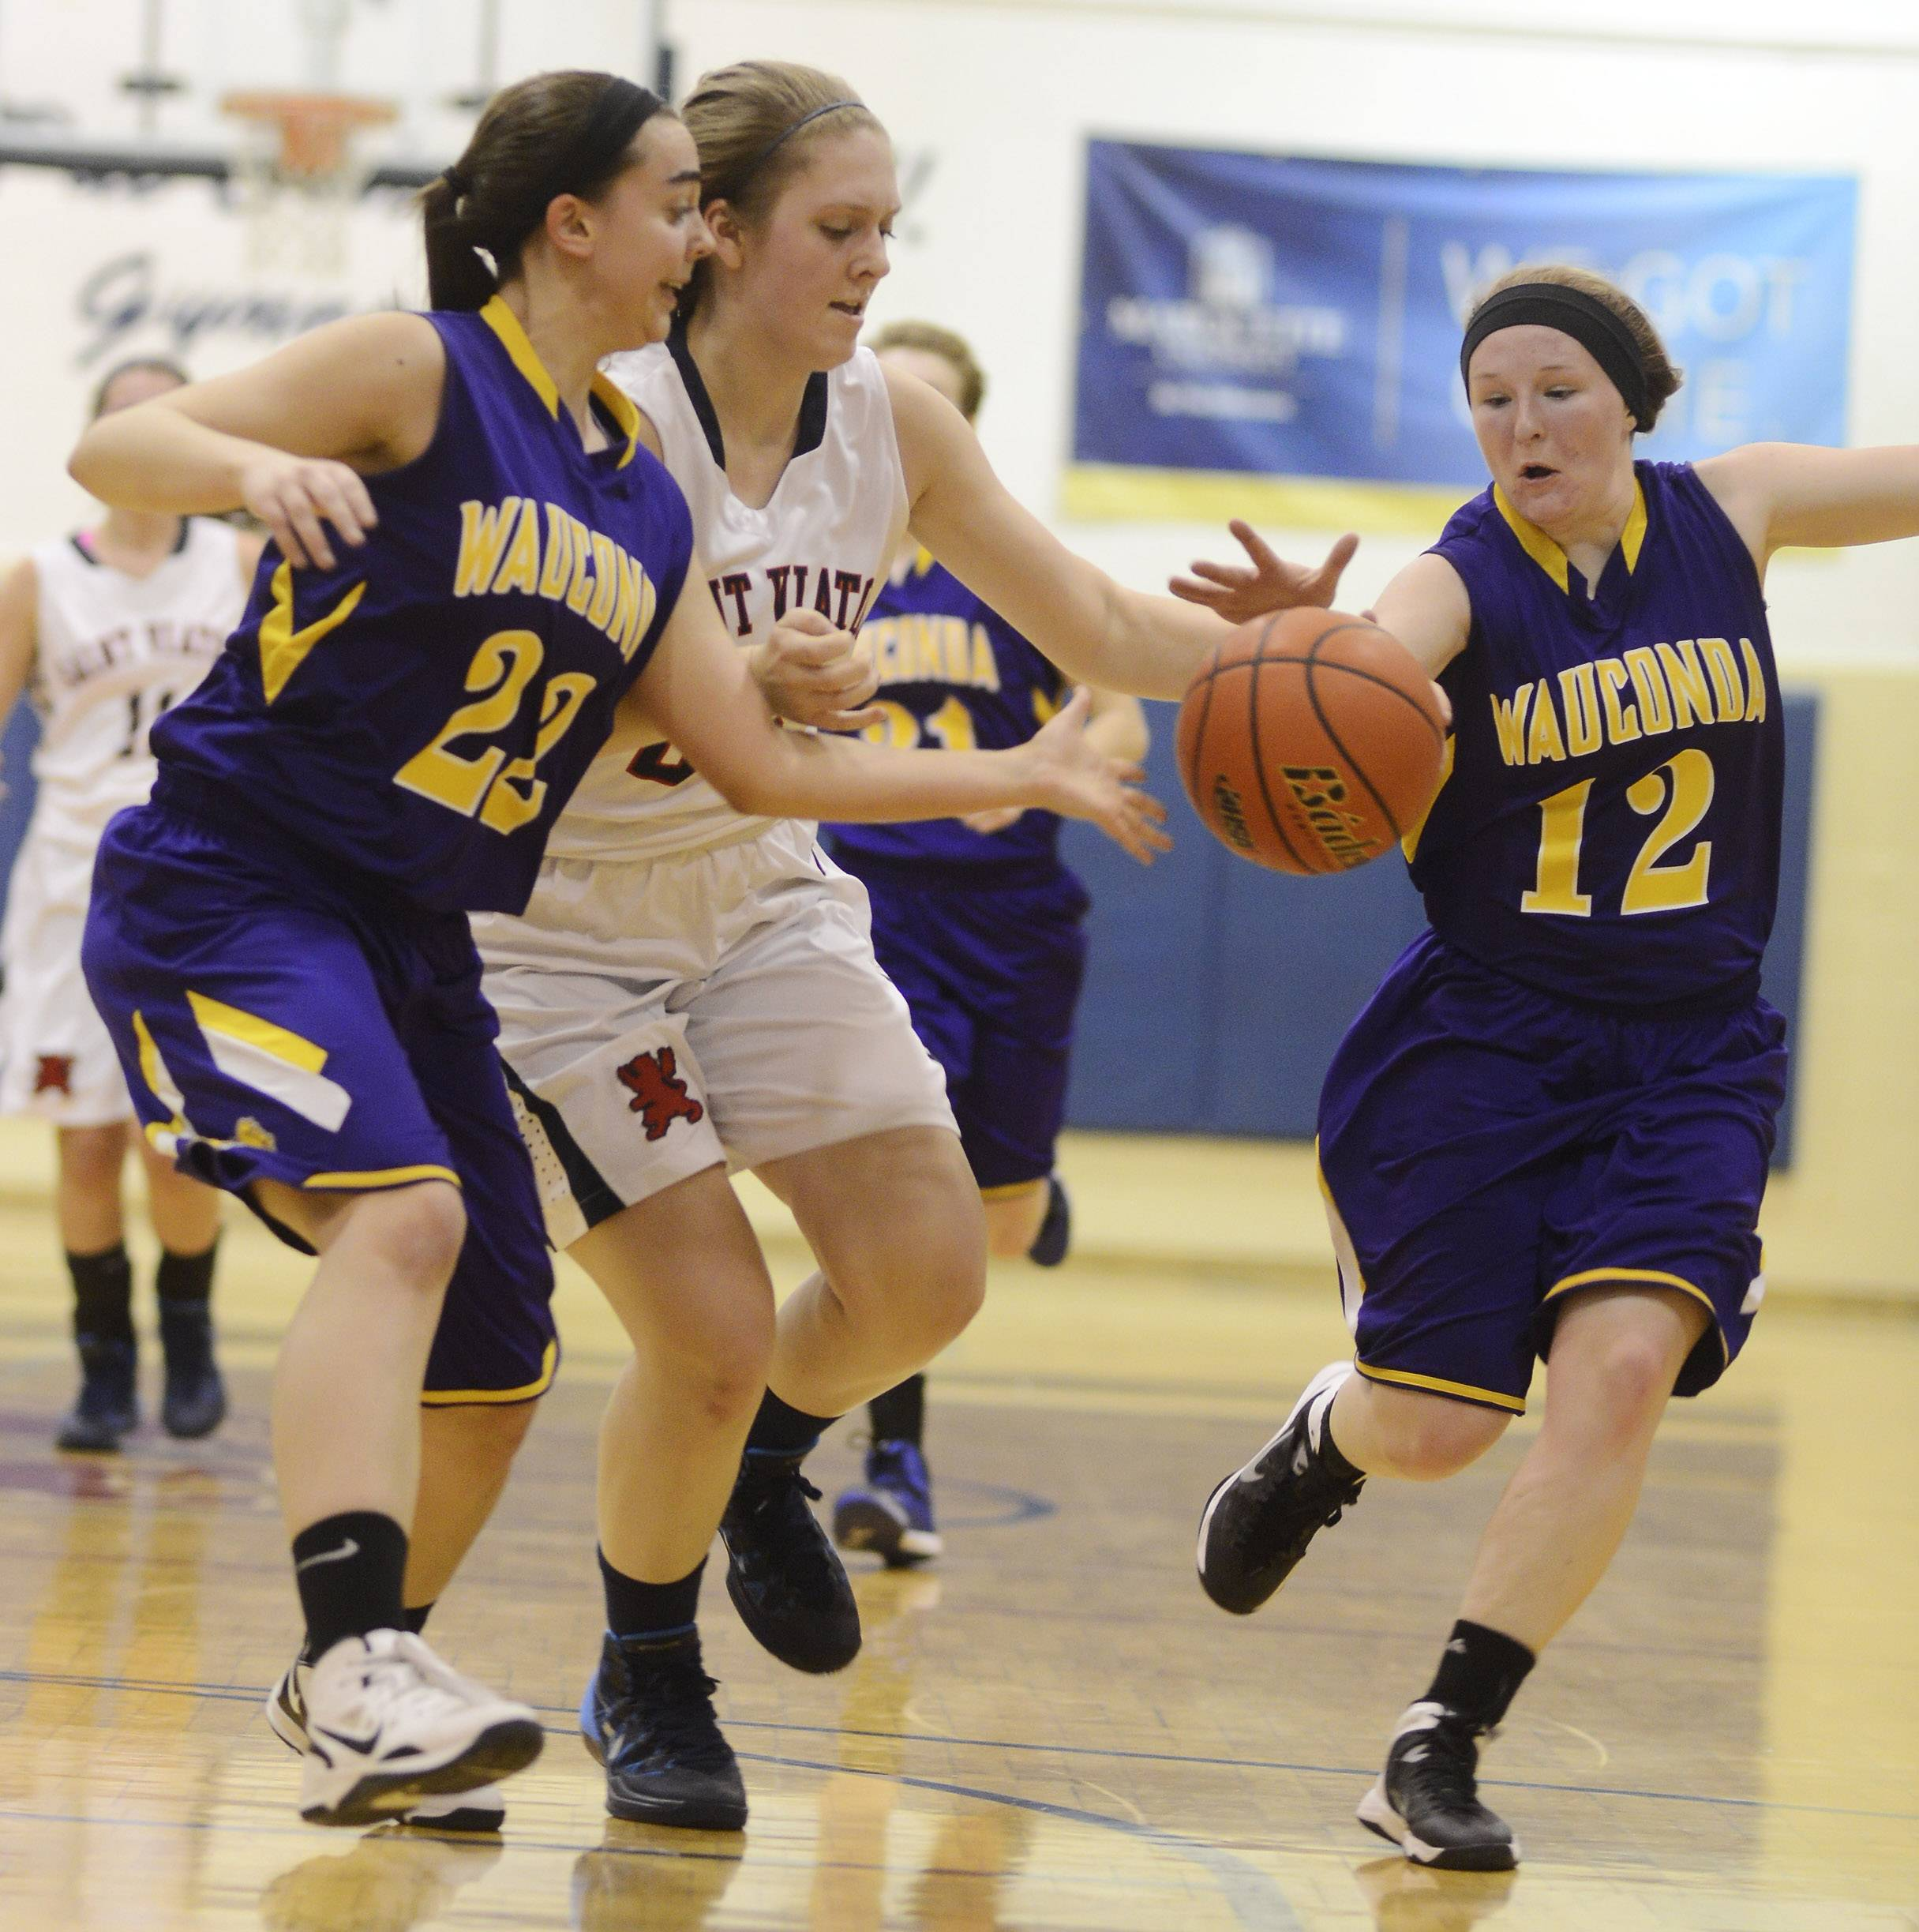 Wauconda defenders Natalie Harding, left, and Lauren Nee try to steal the ball from St. Viator's Jessica Hohlweg during Wednesday's game in Arlington Heights.